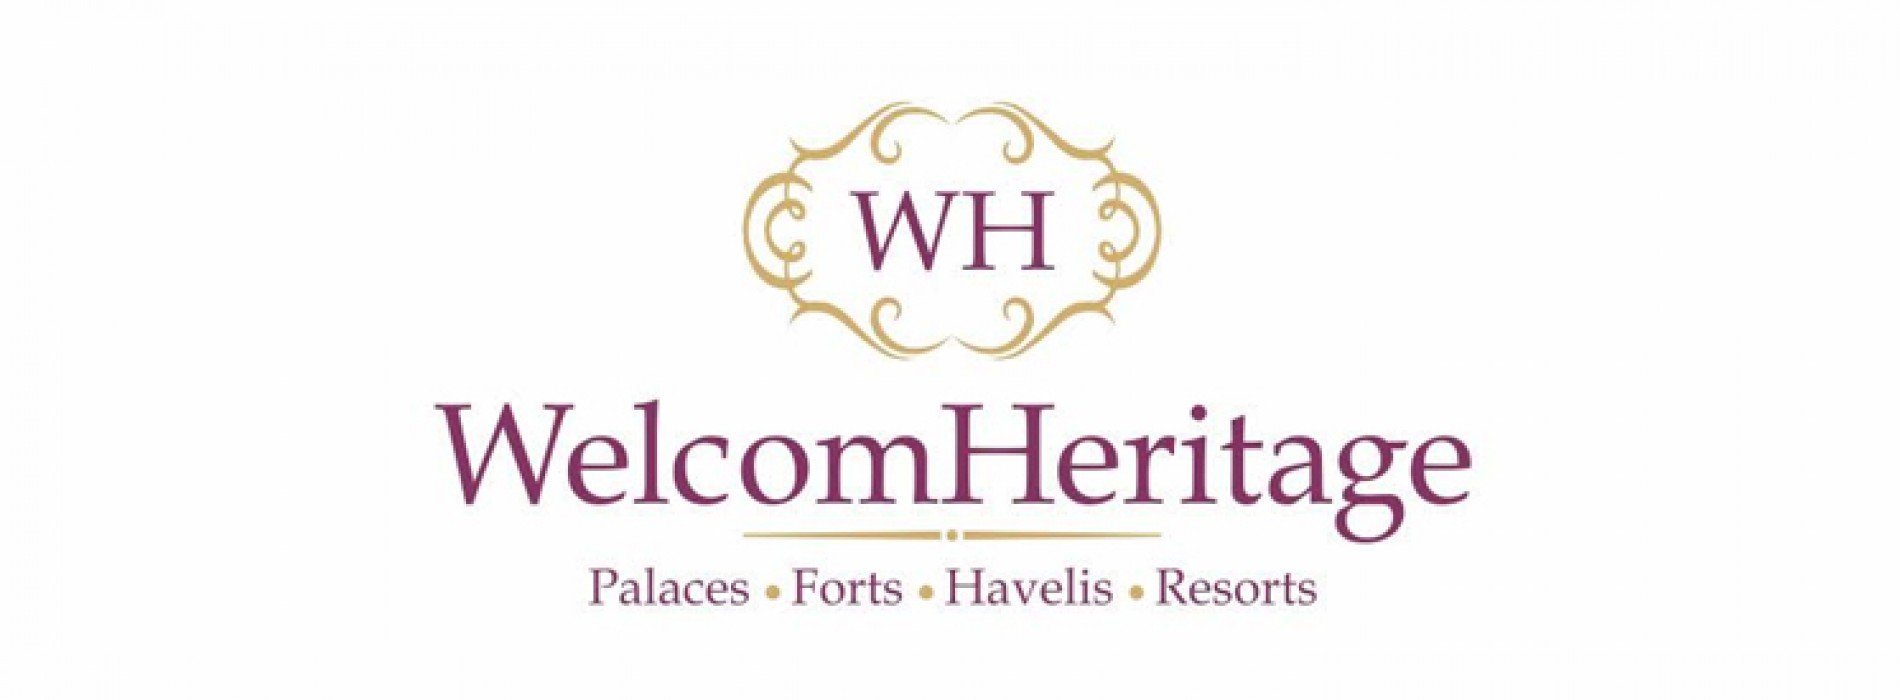 WelcomHeritage Hotels has a new CEO